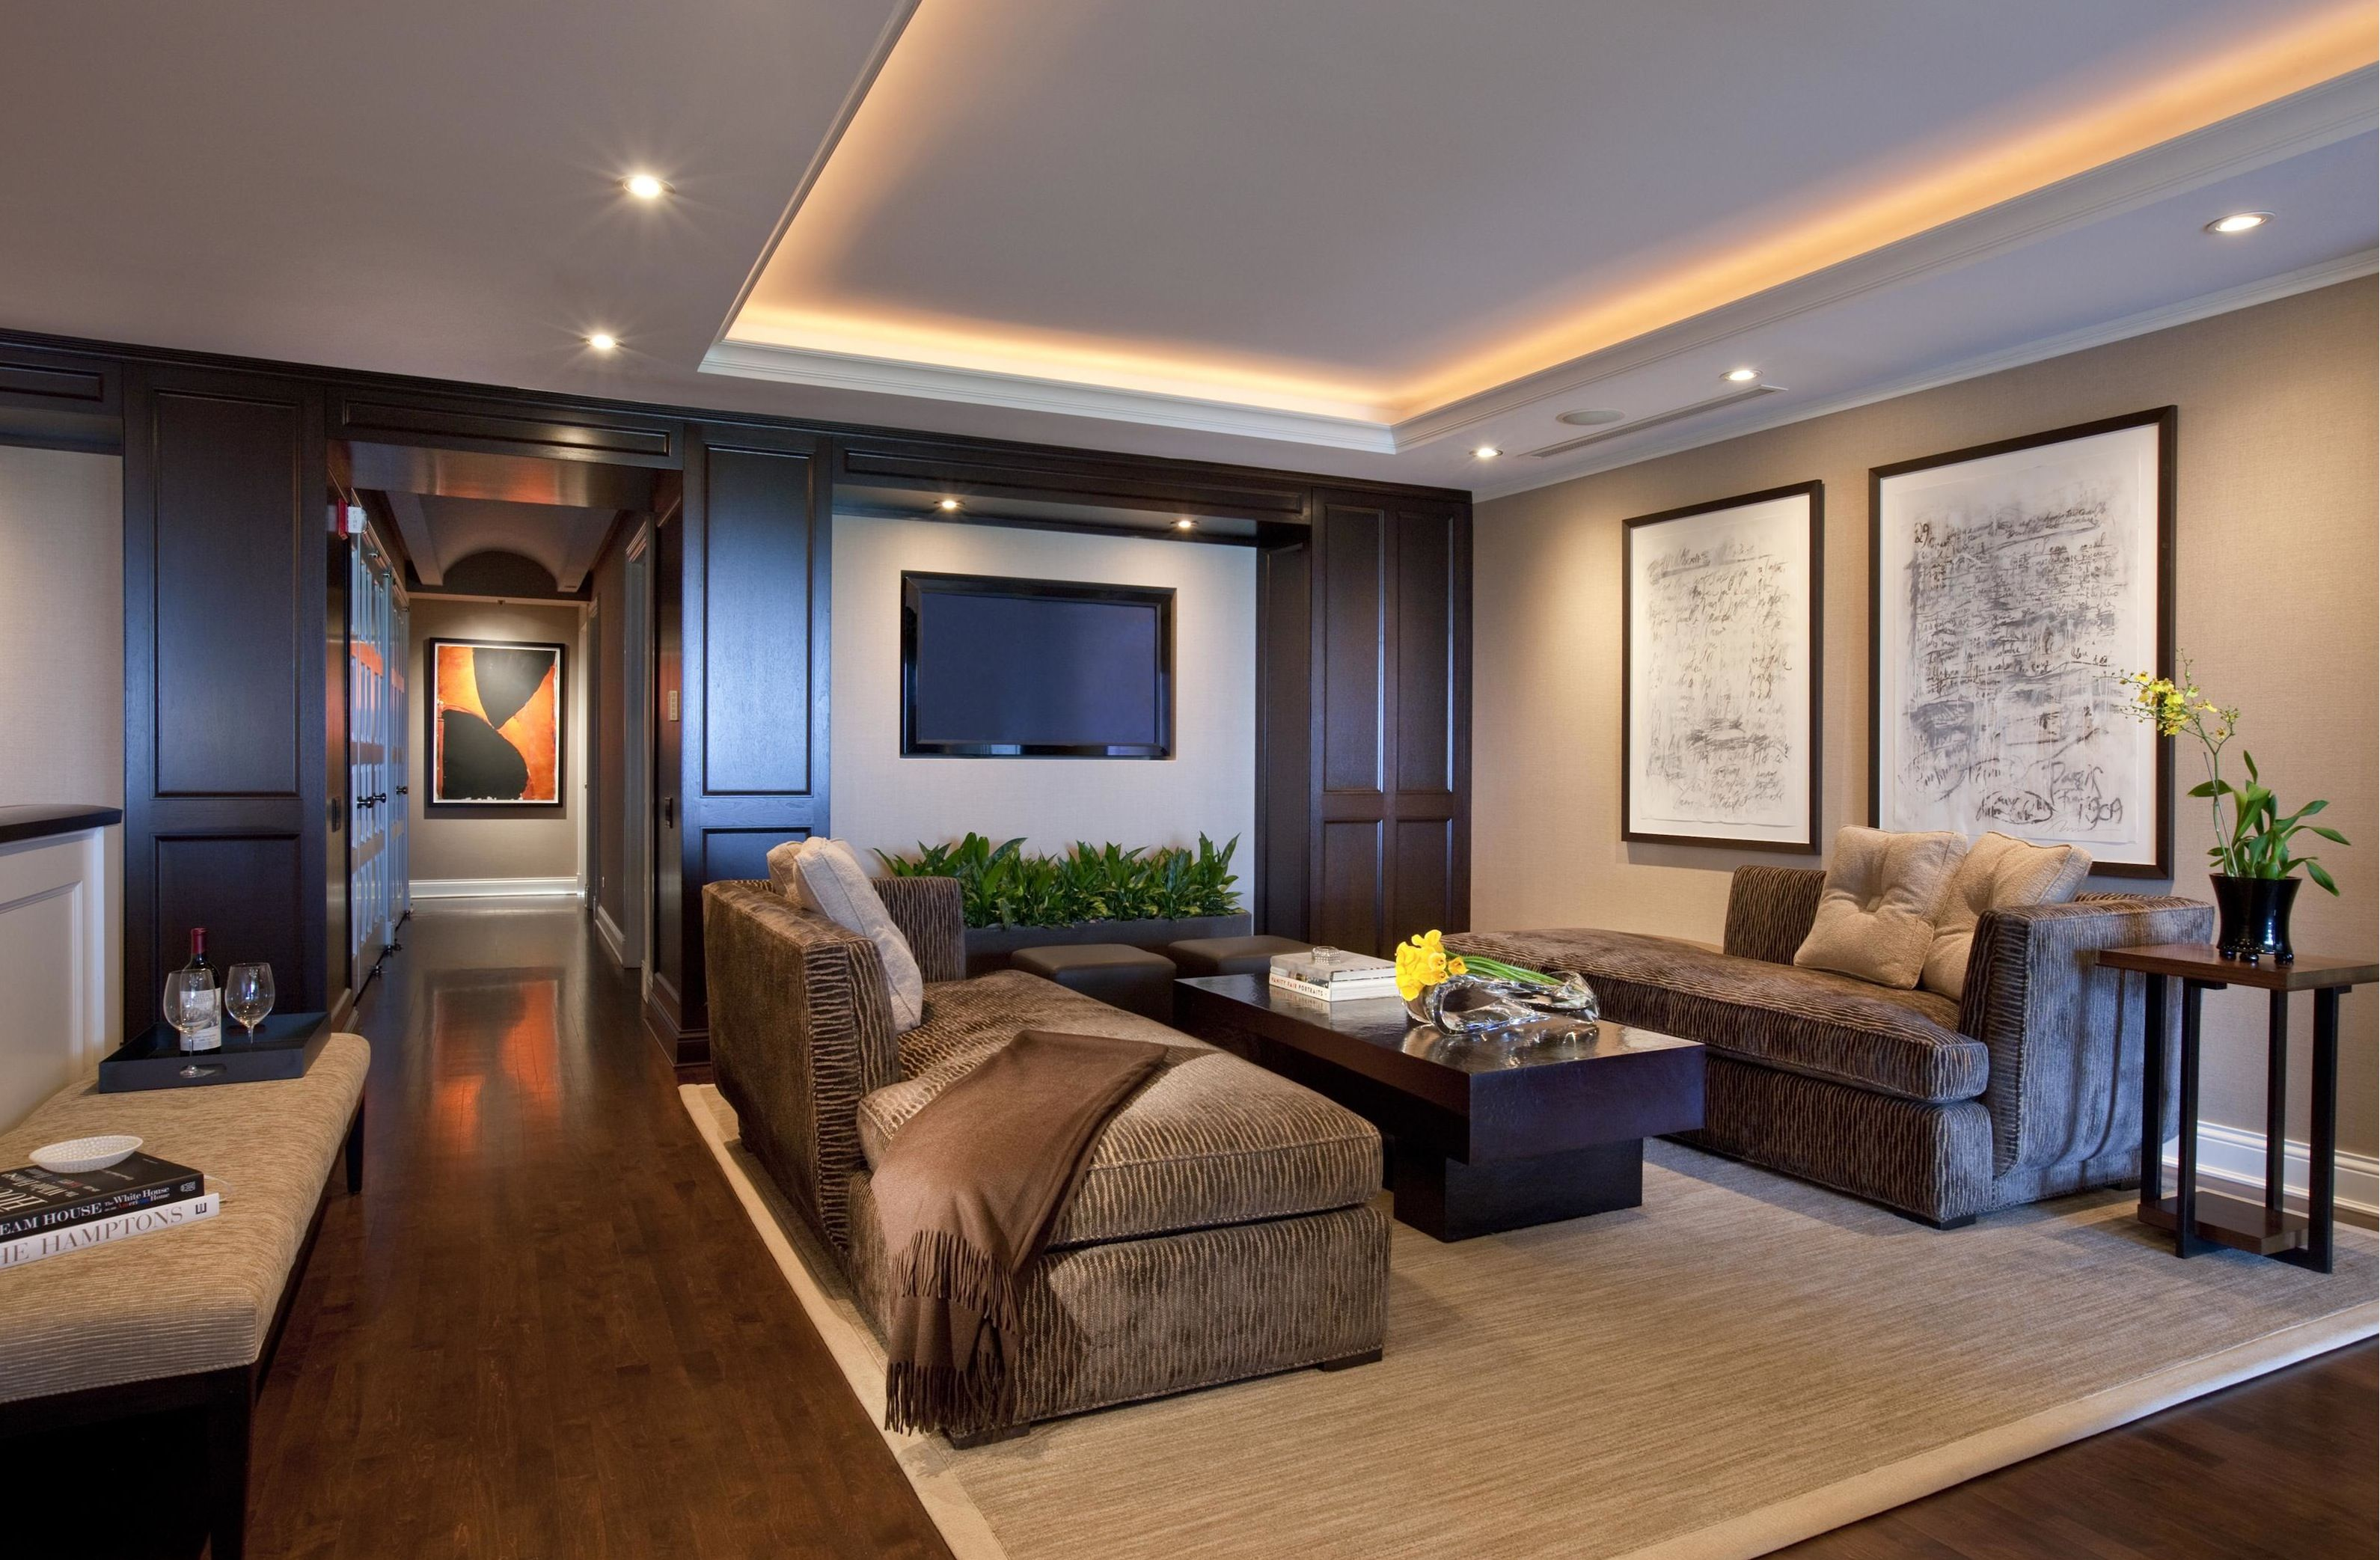 Ceiling recessed lighting for bub | home sweet home. | Pinterest ...